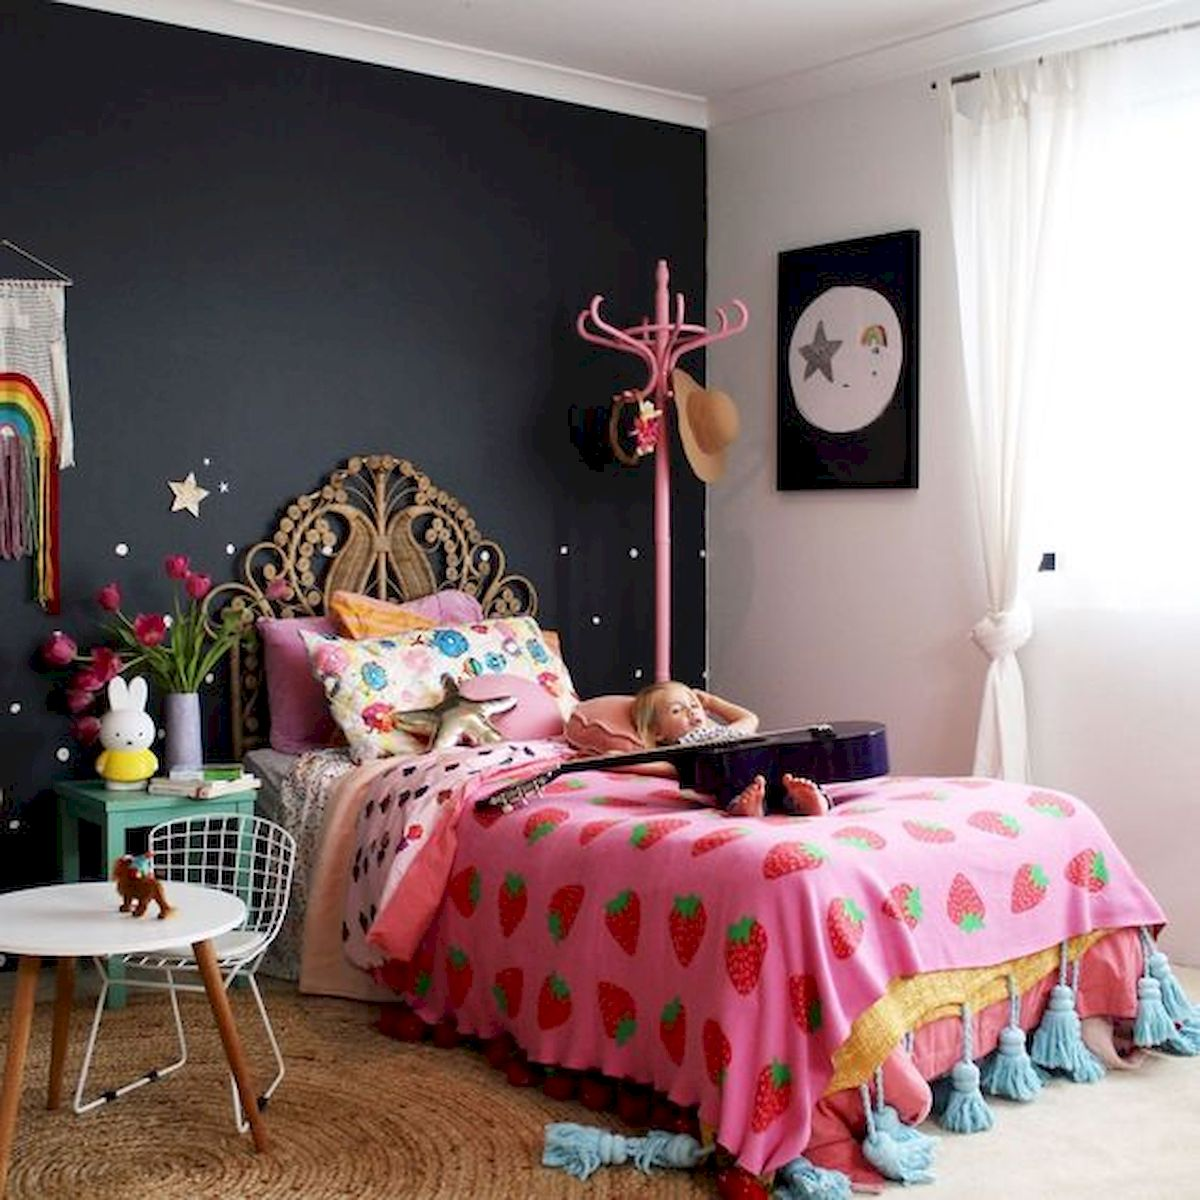 50 Beautiful Bedroom Design Ideas for Kids - house8055.com